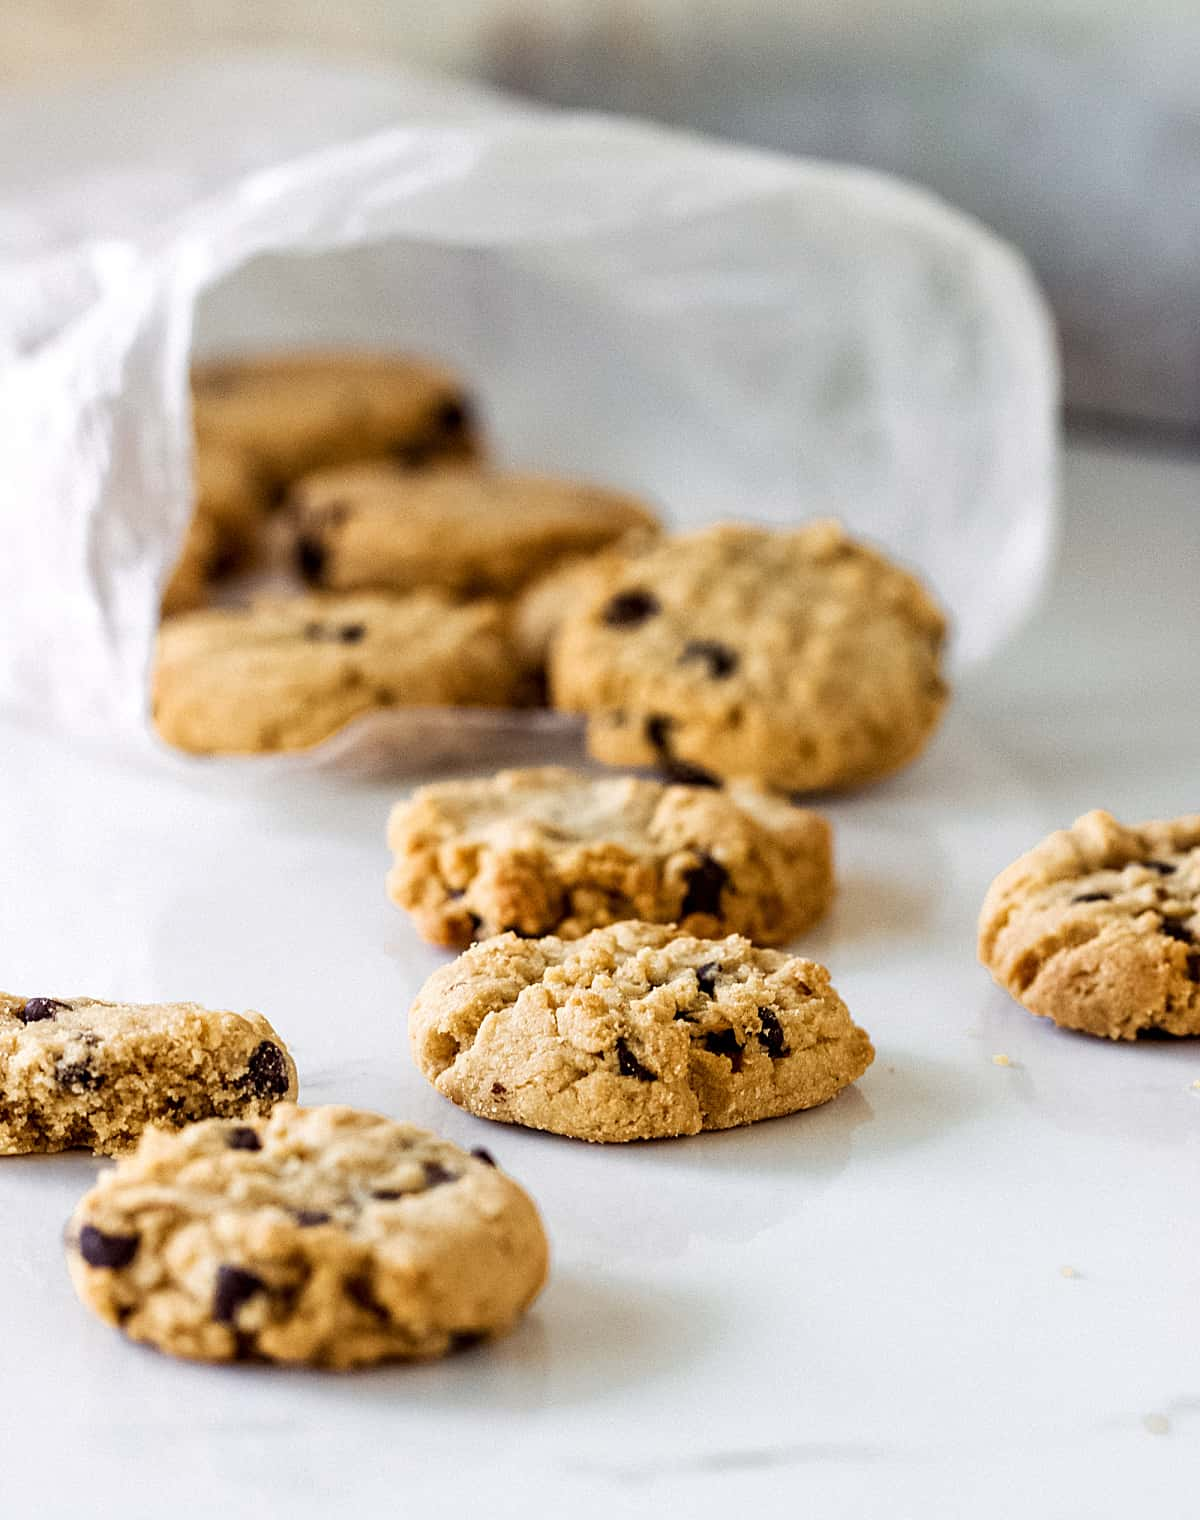 Cookies coming out of a plastic bag on a white surface